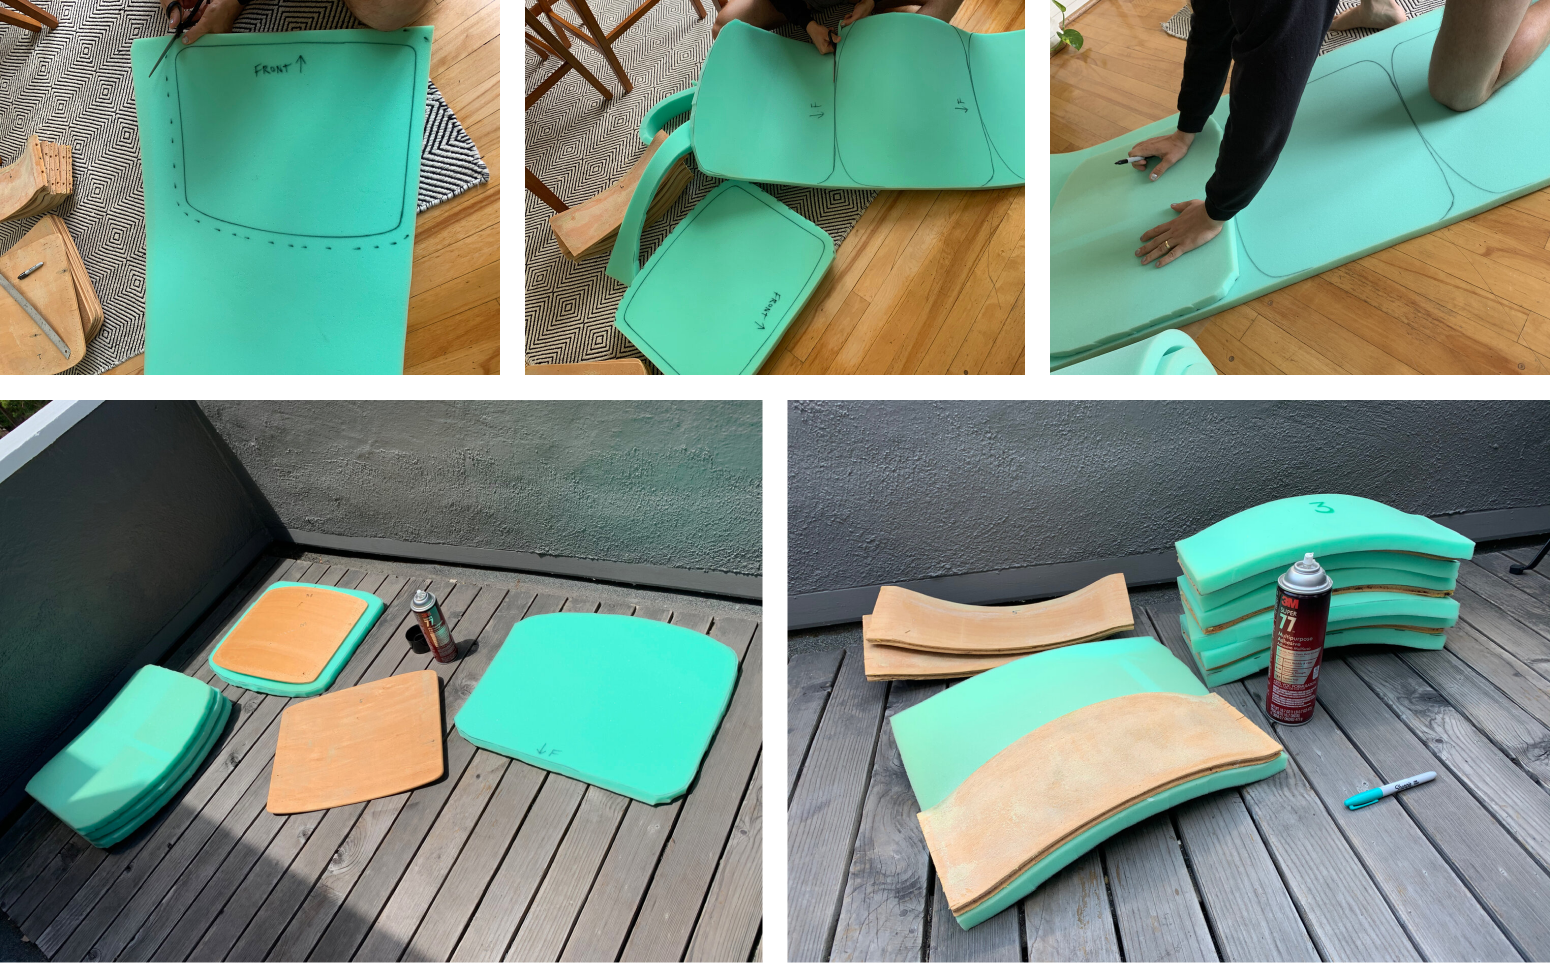 Photos showing new green foam being cut out and applied to chair seats and seat backs